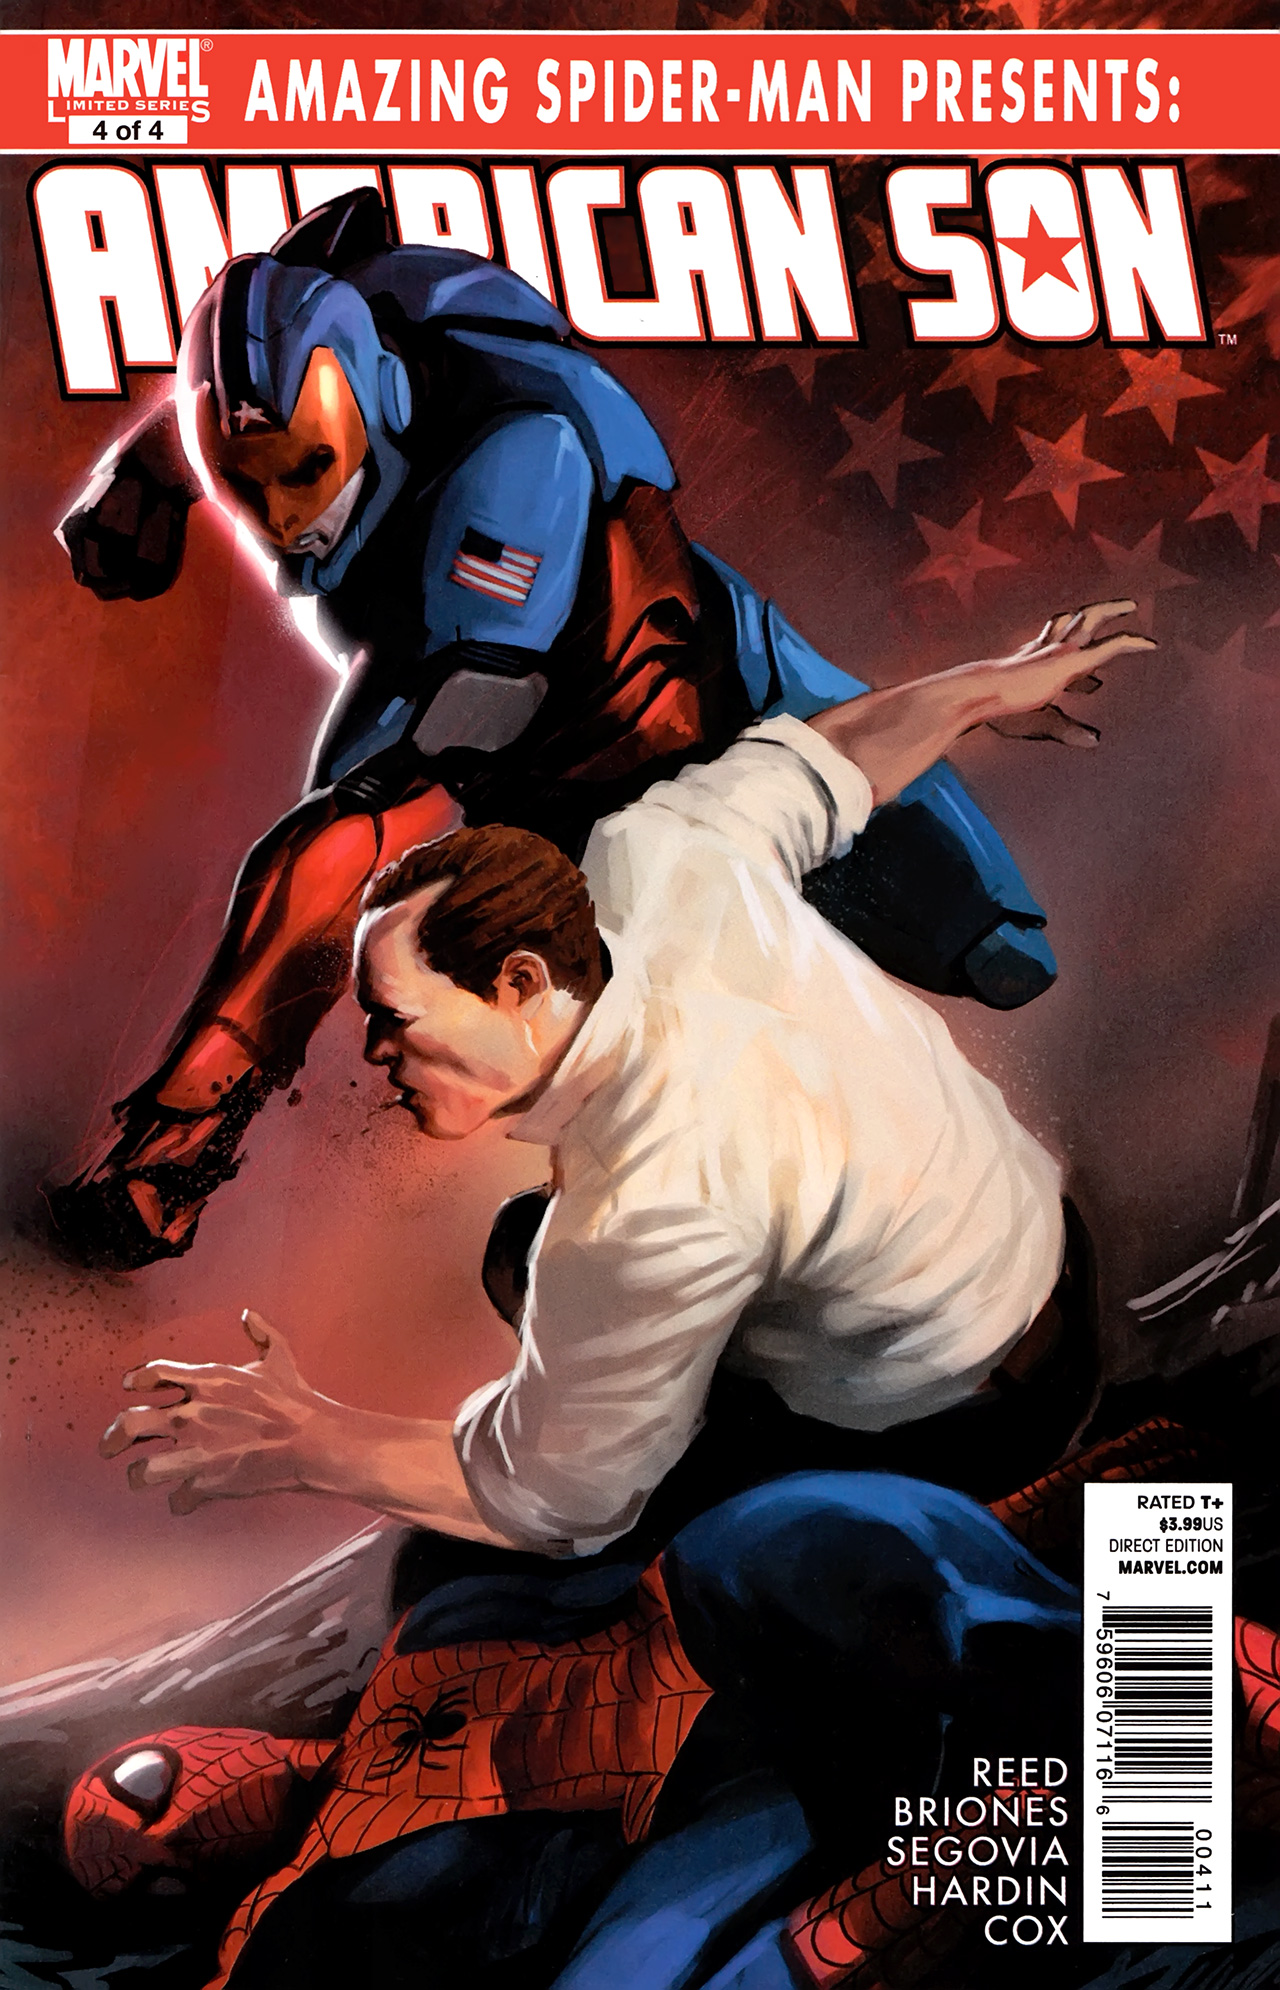 Read online Amazing Spider-Man Presents: American Son comic -  Issue #4 - 1